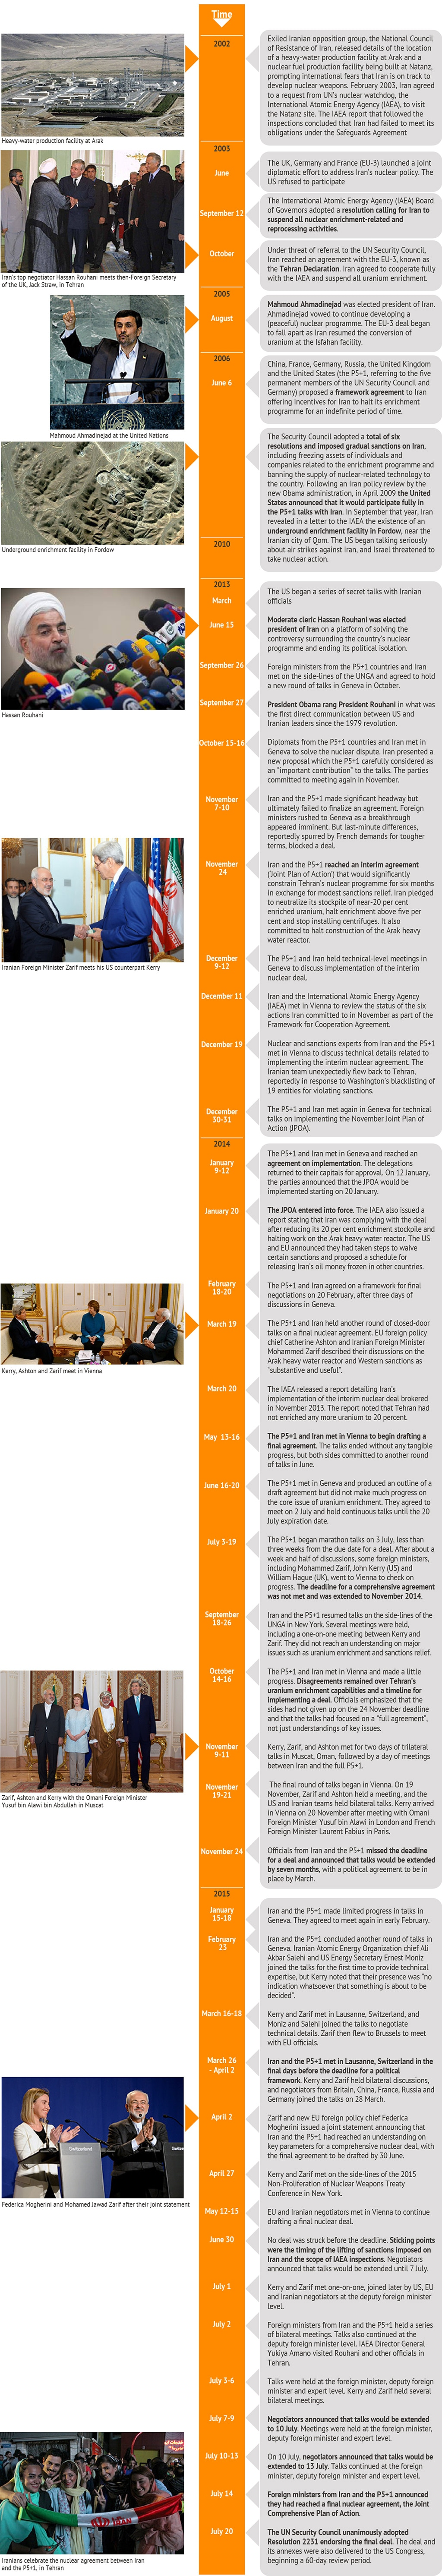 Iran nuclear programme negotiations chronology